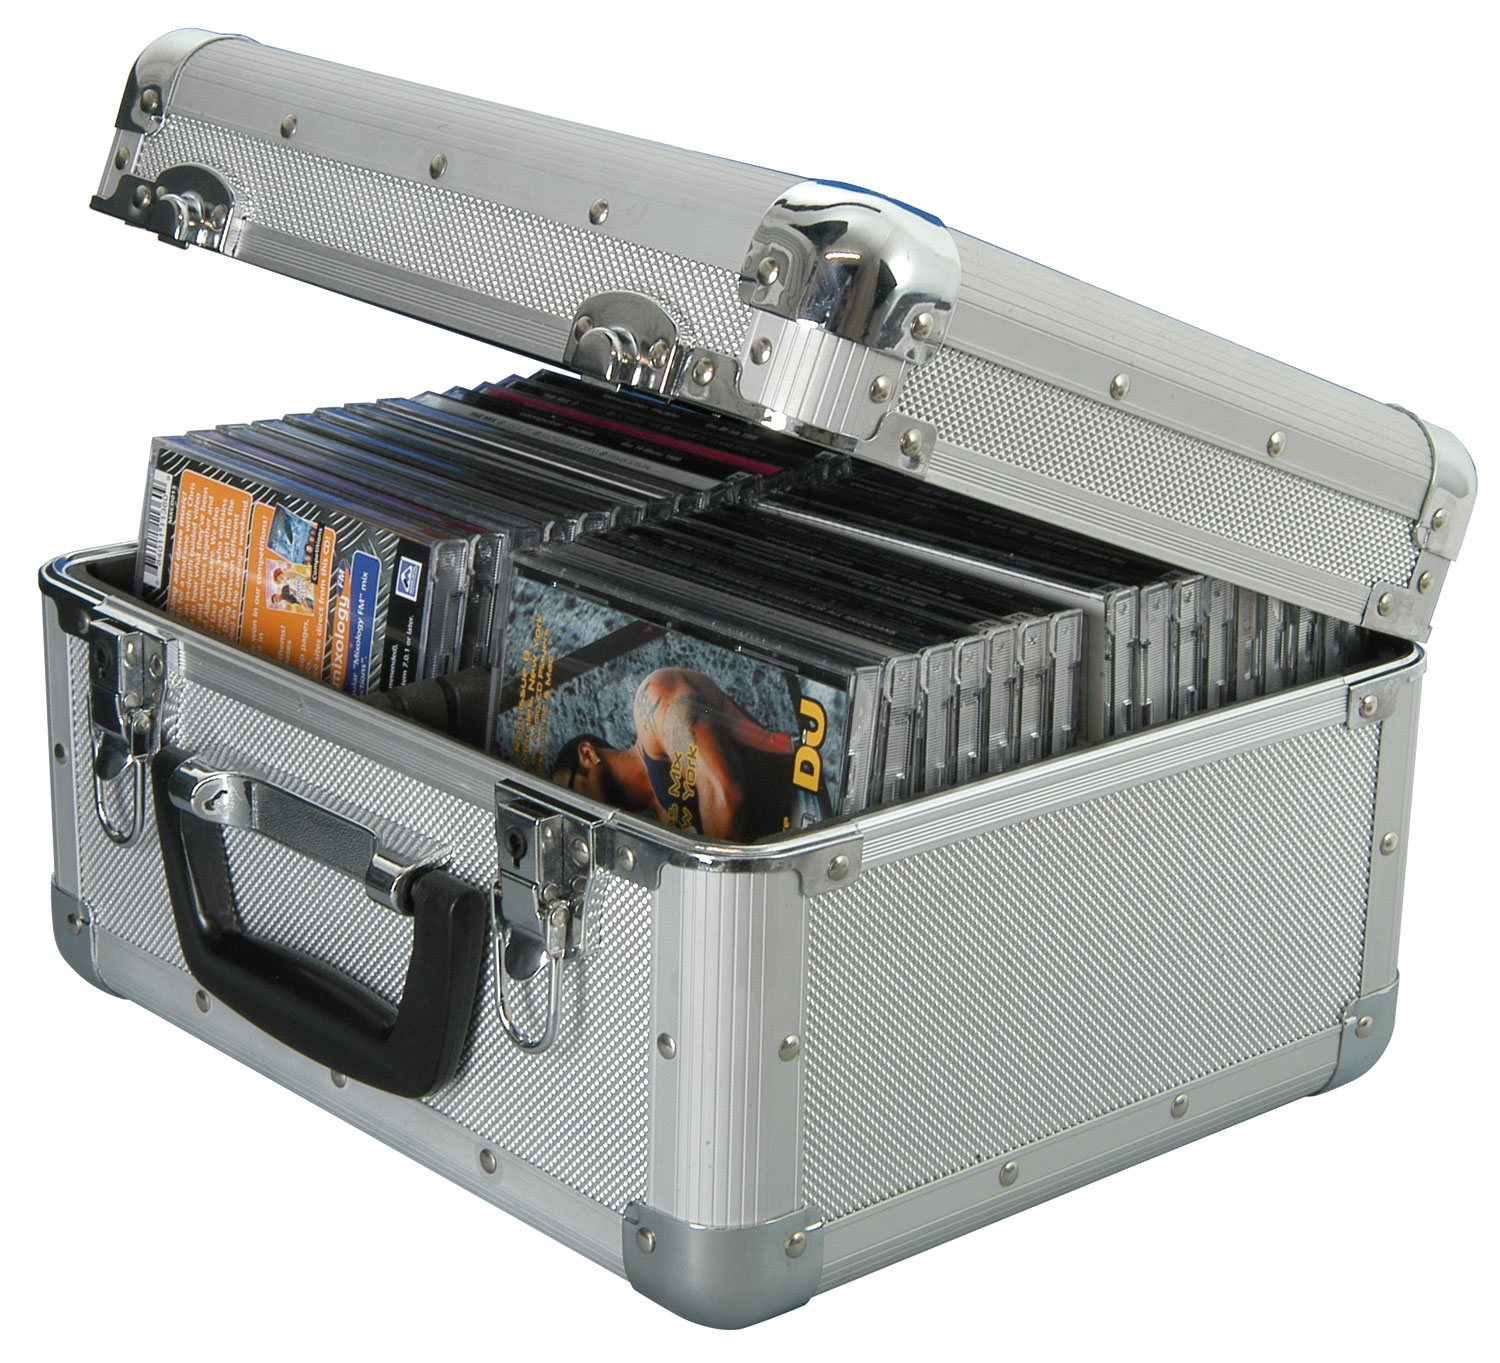 Aluminium CD flight case, 60 CDs